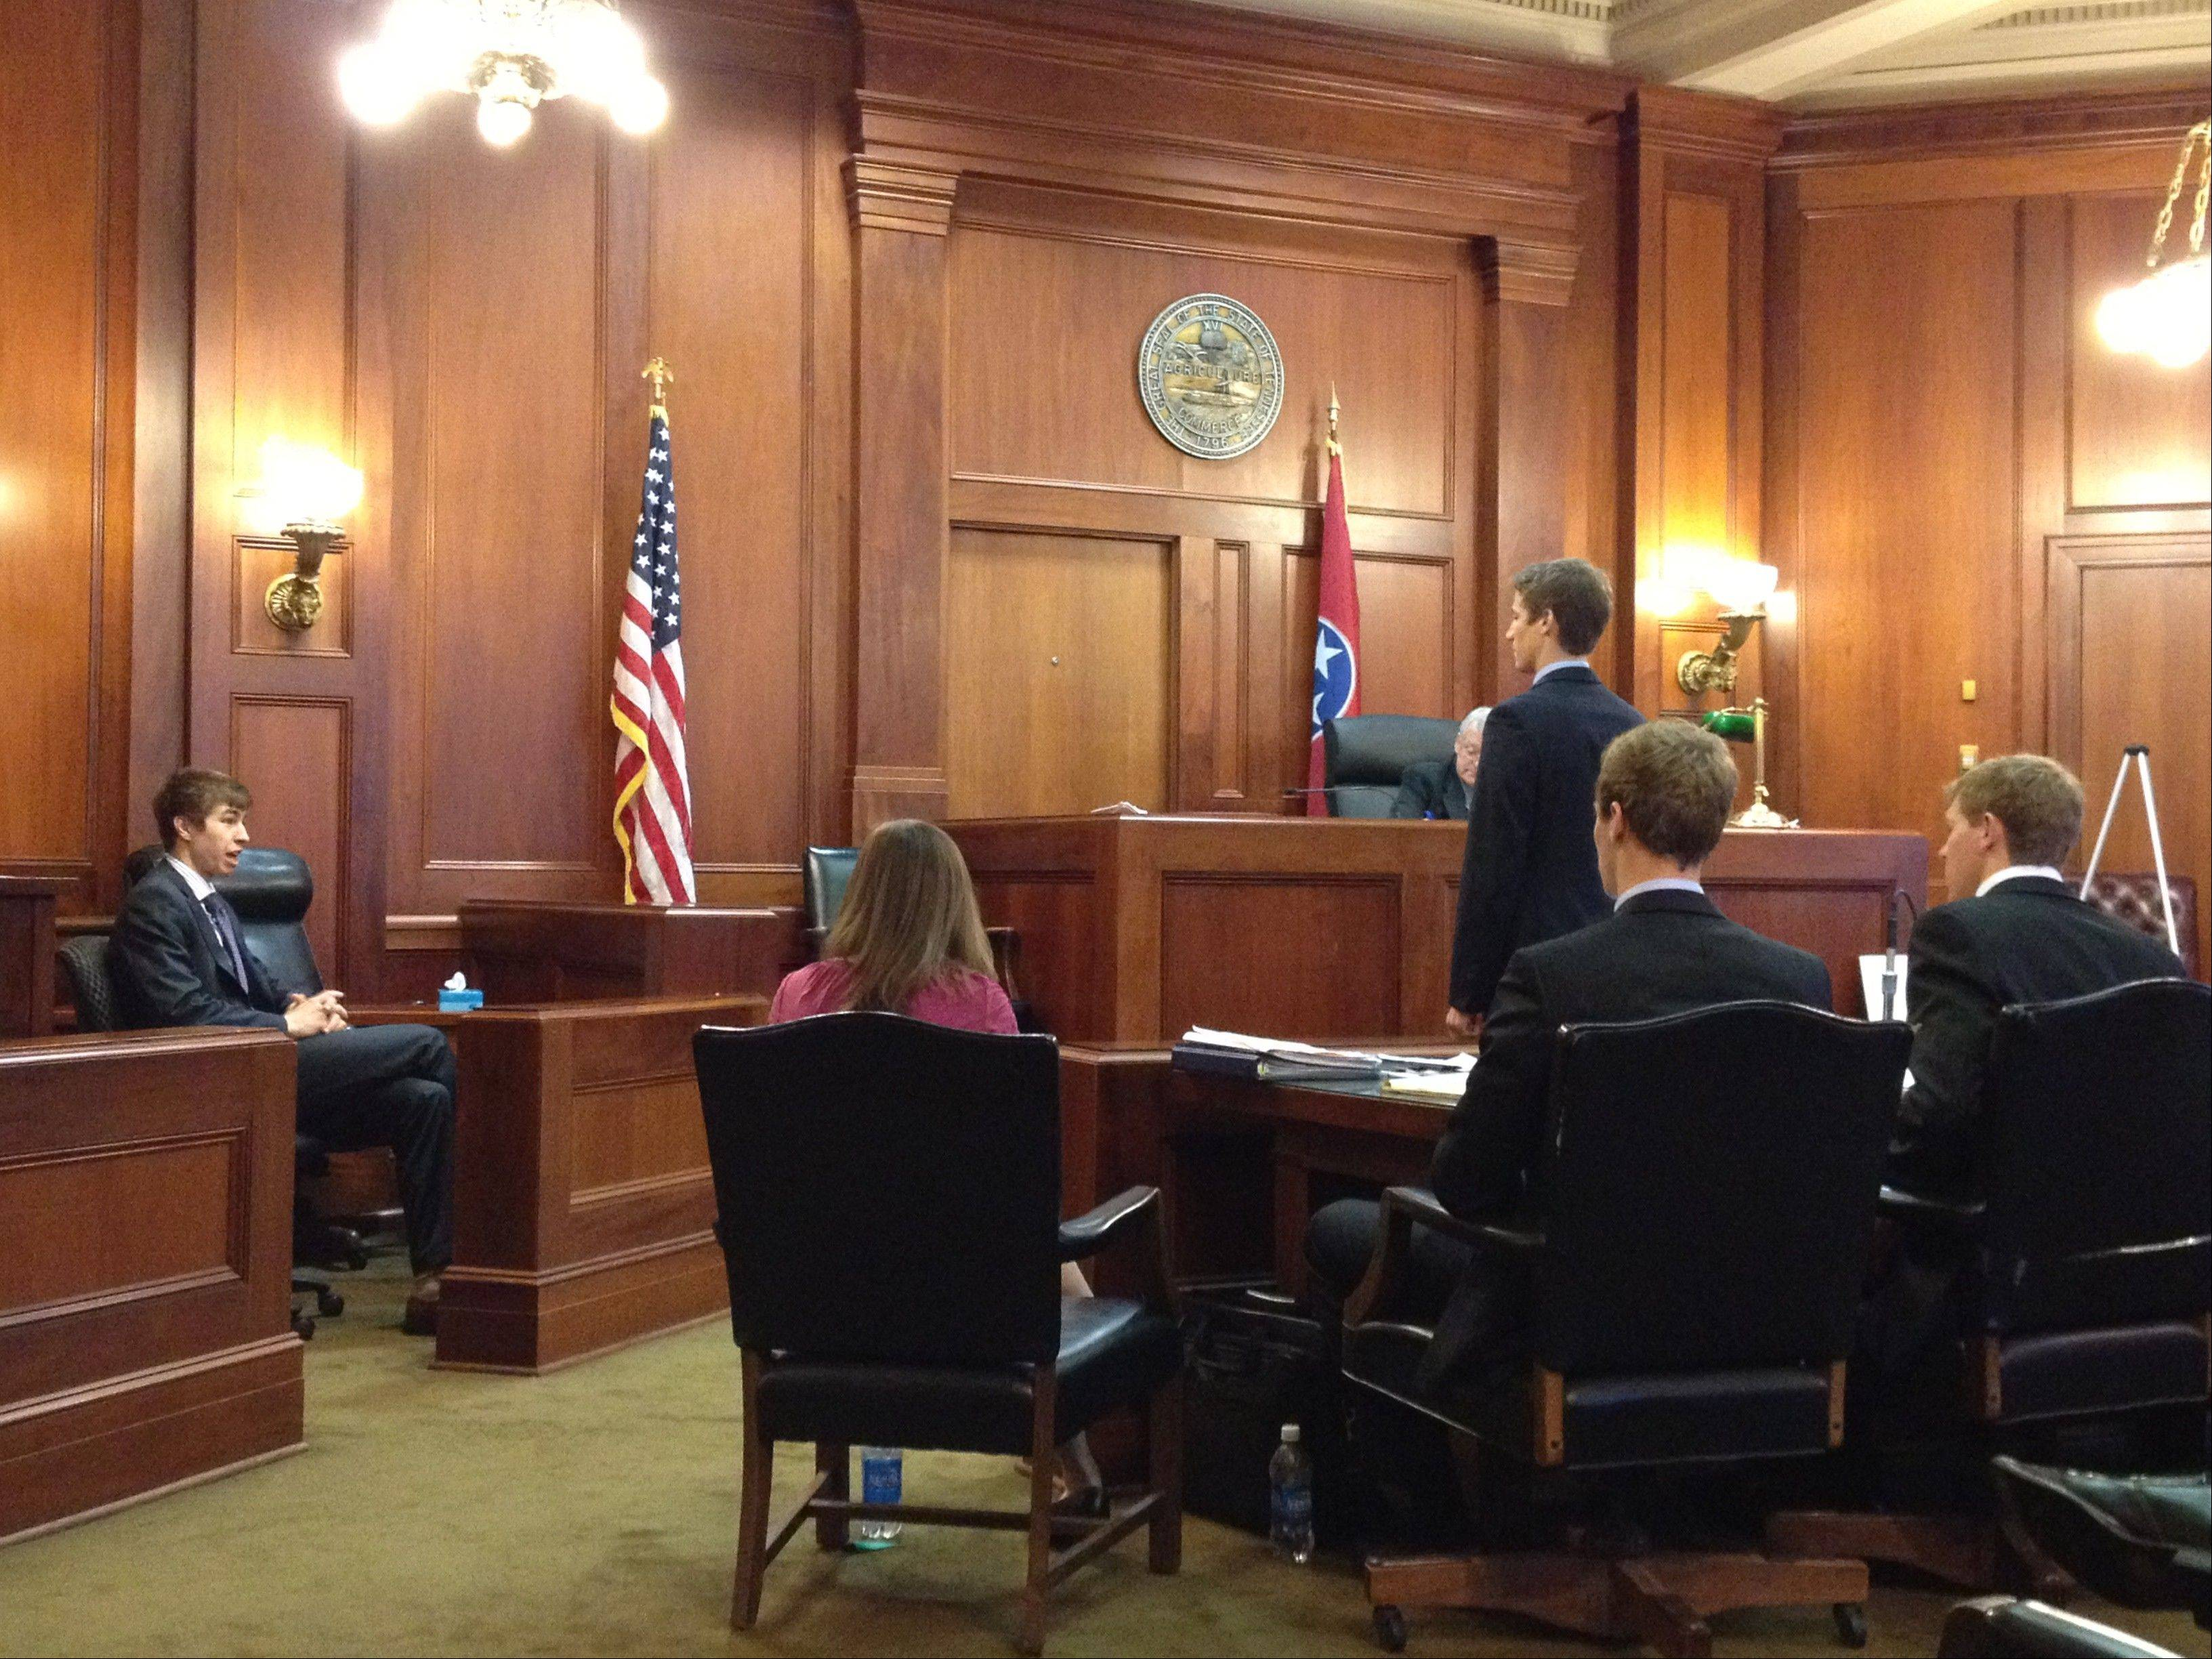 Wheaton College Mock Trial Team member John Patrick takes the witness stand last year at the American Mock Trial Association's Opening Round Championship Series in Memphis, Tenn. Team Captain Trenton Van Oss is standing.